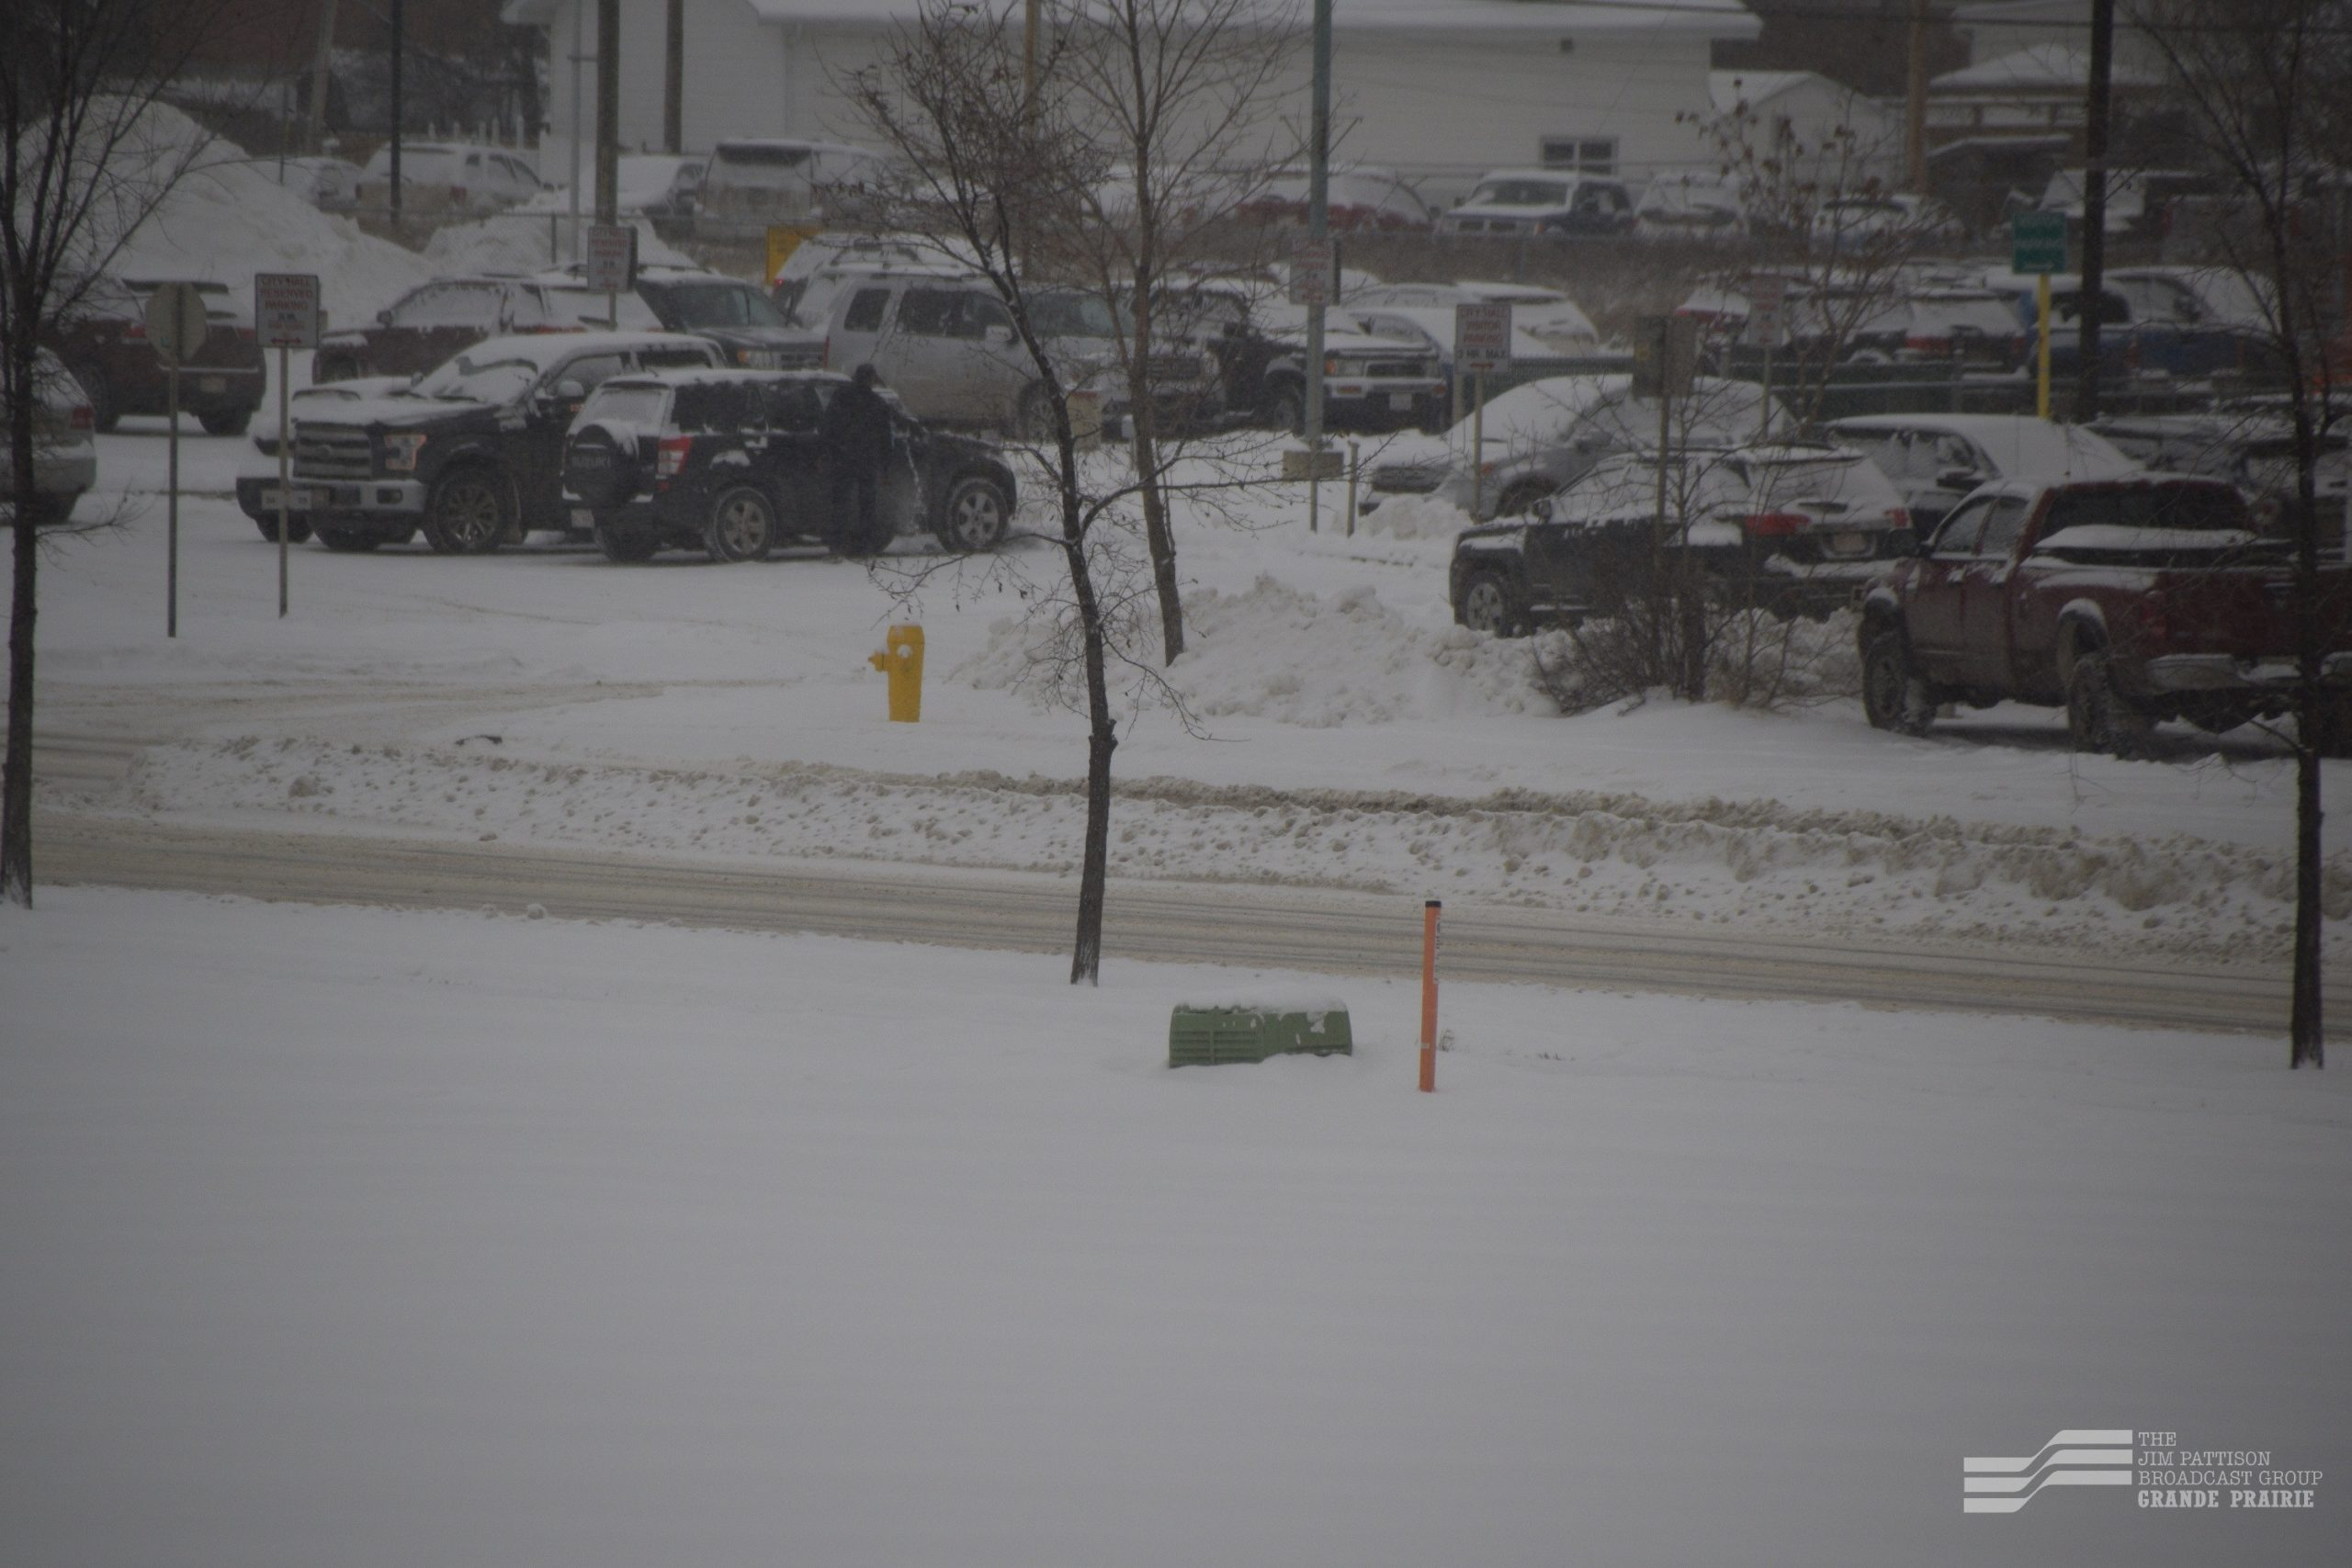 Parking bans kick in Wednesday, County plows going hard